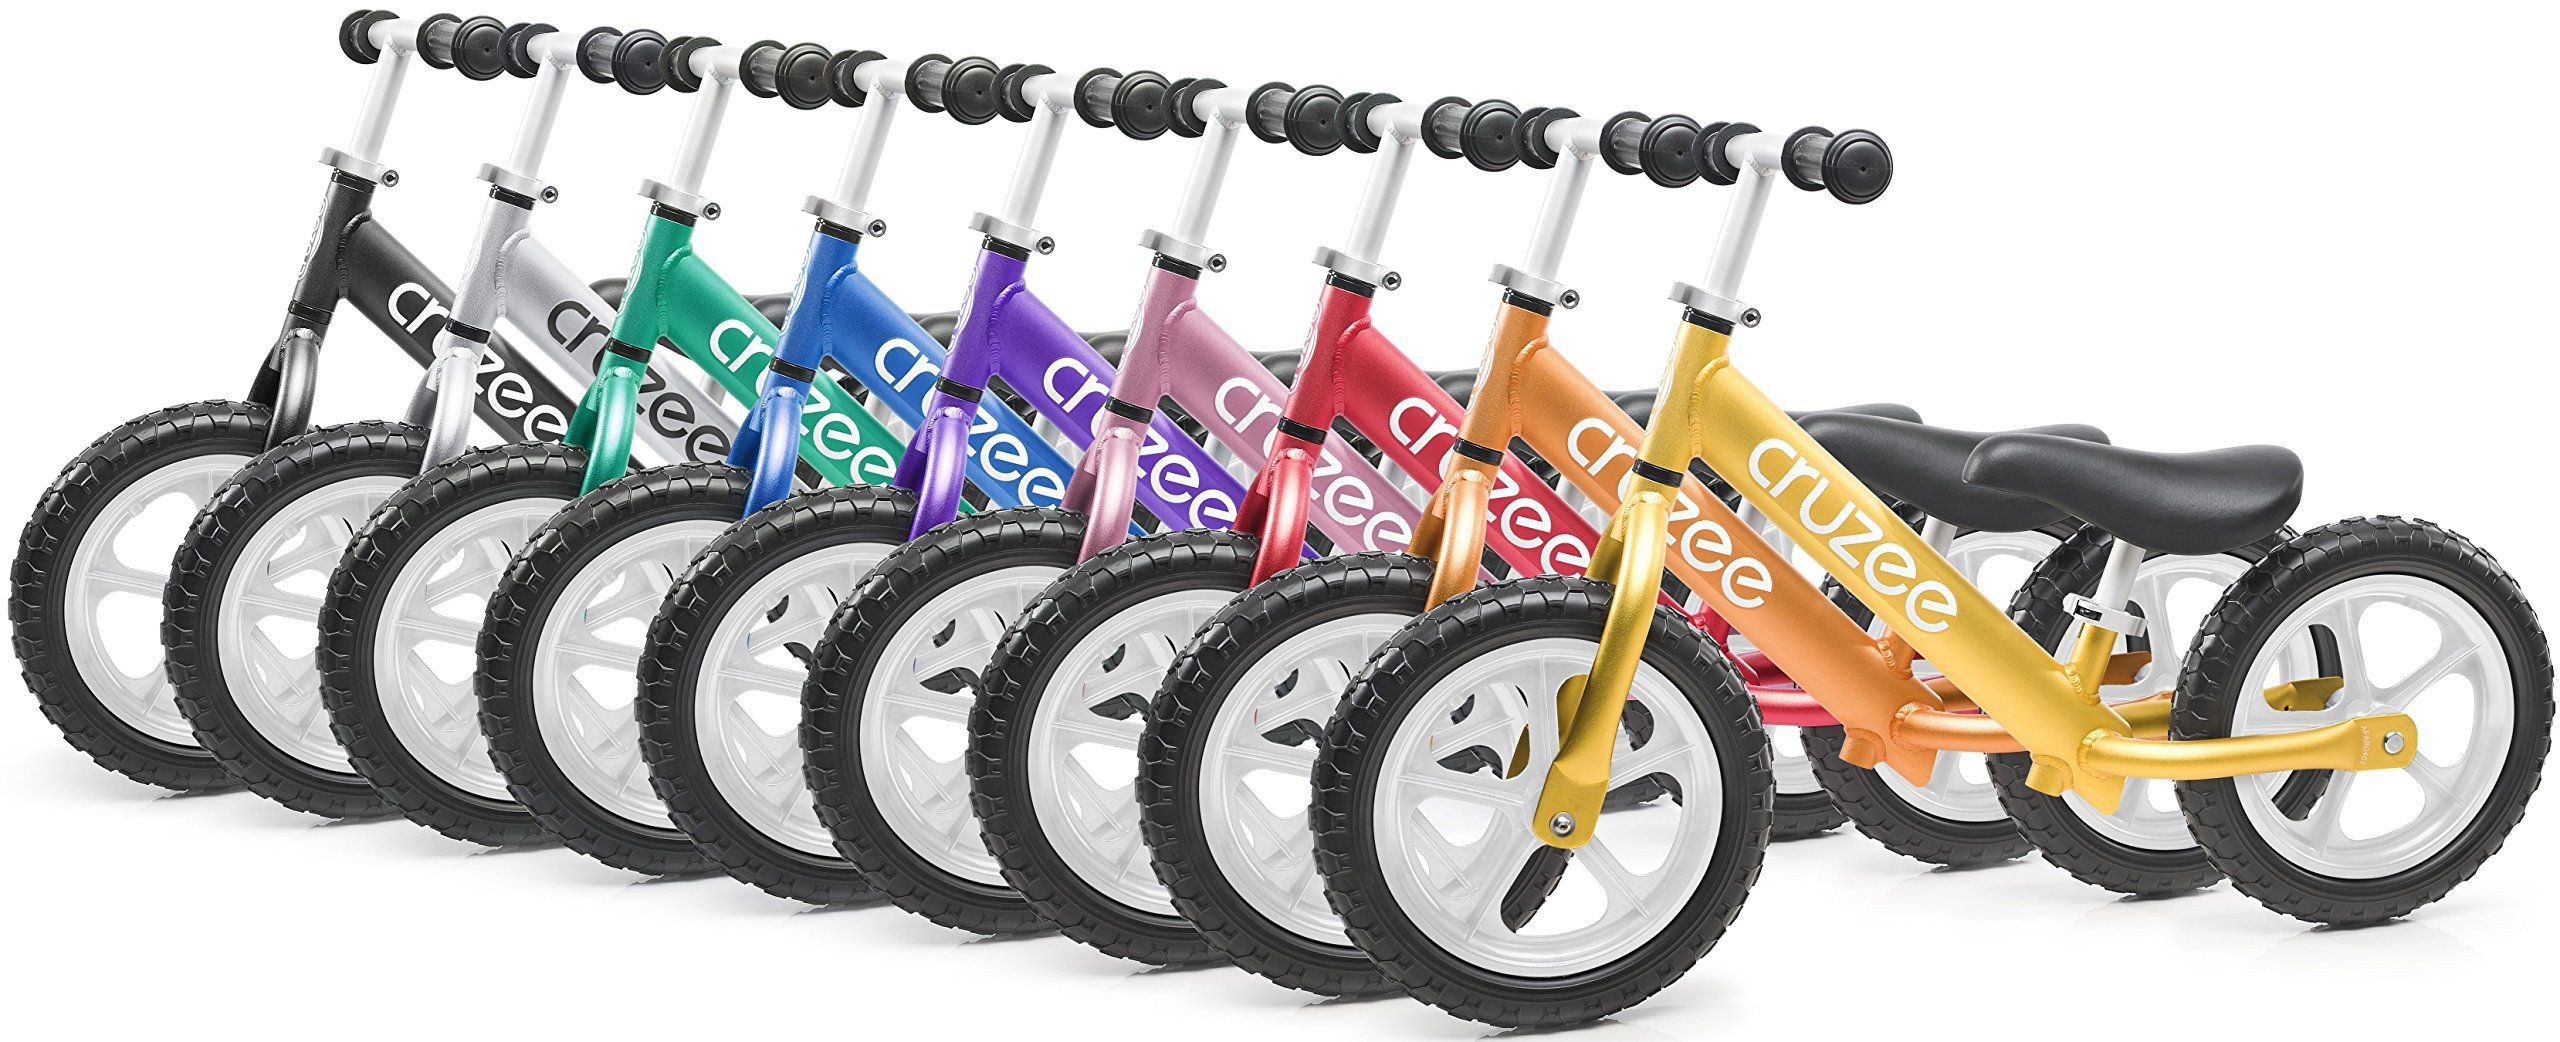 Cruzee Ultralite Balance Bike 4 4 Lbs For Ages 1 5 To 5 Years Best